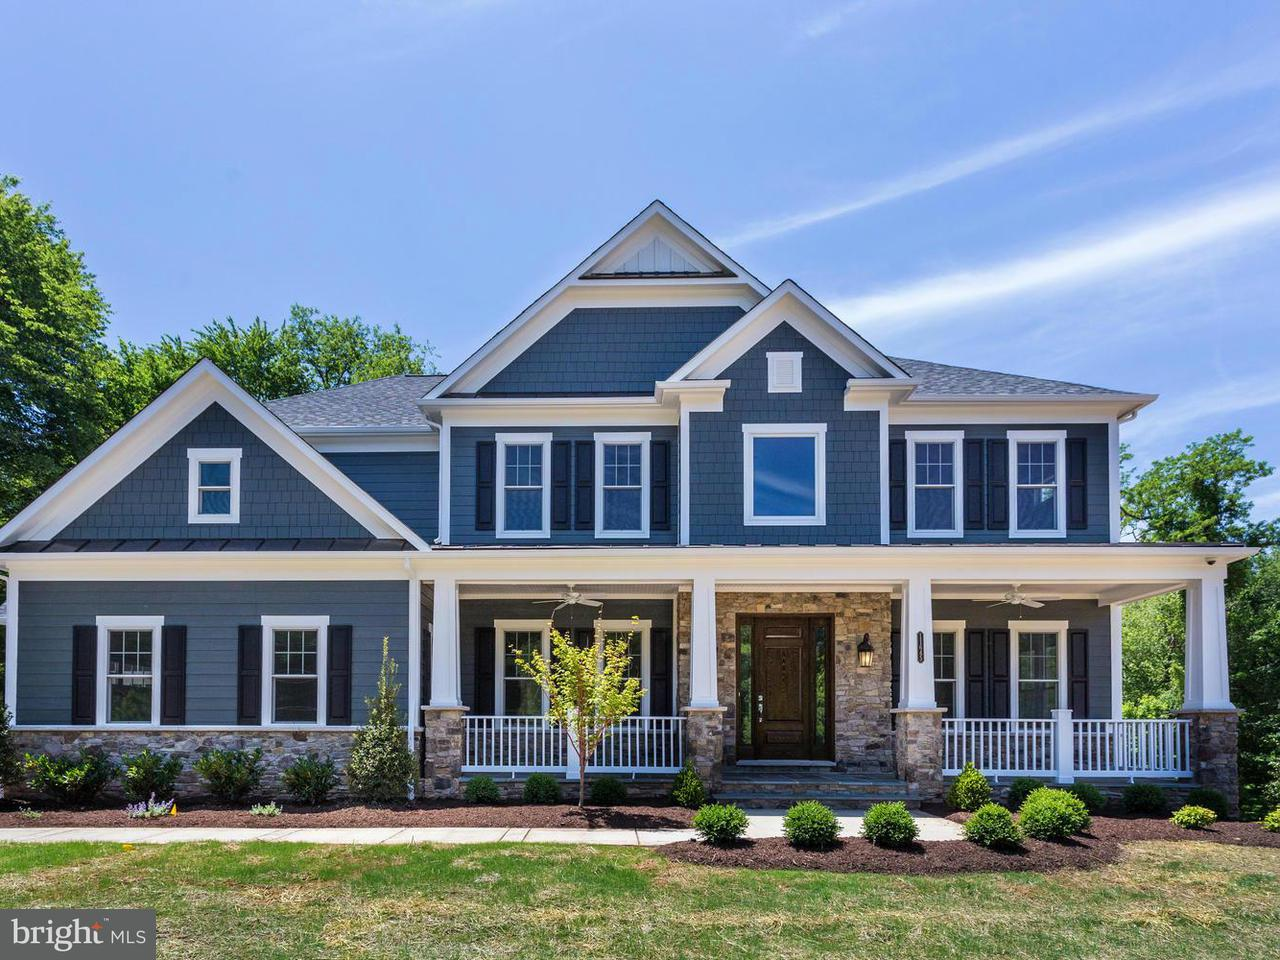 Single Family Home for Sale at 11709 Valley Road 11709 Valley Road Fairfax, Virginia 22033 United States